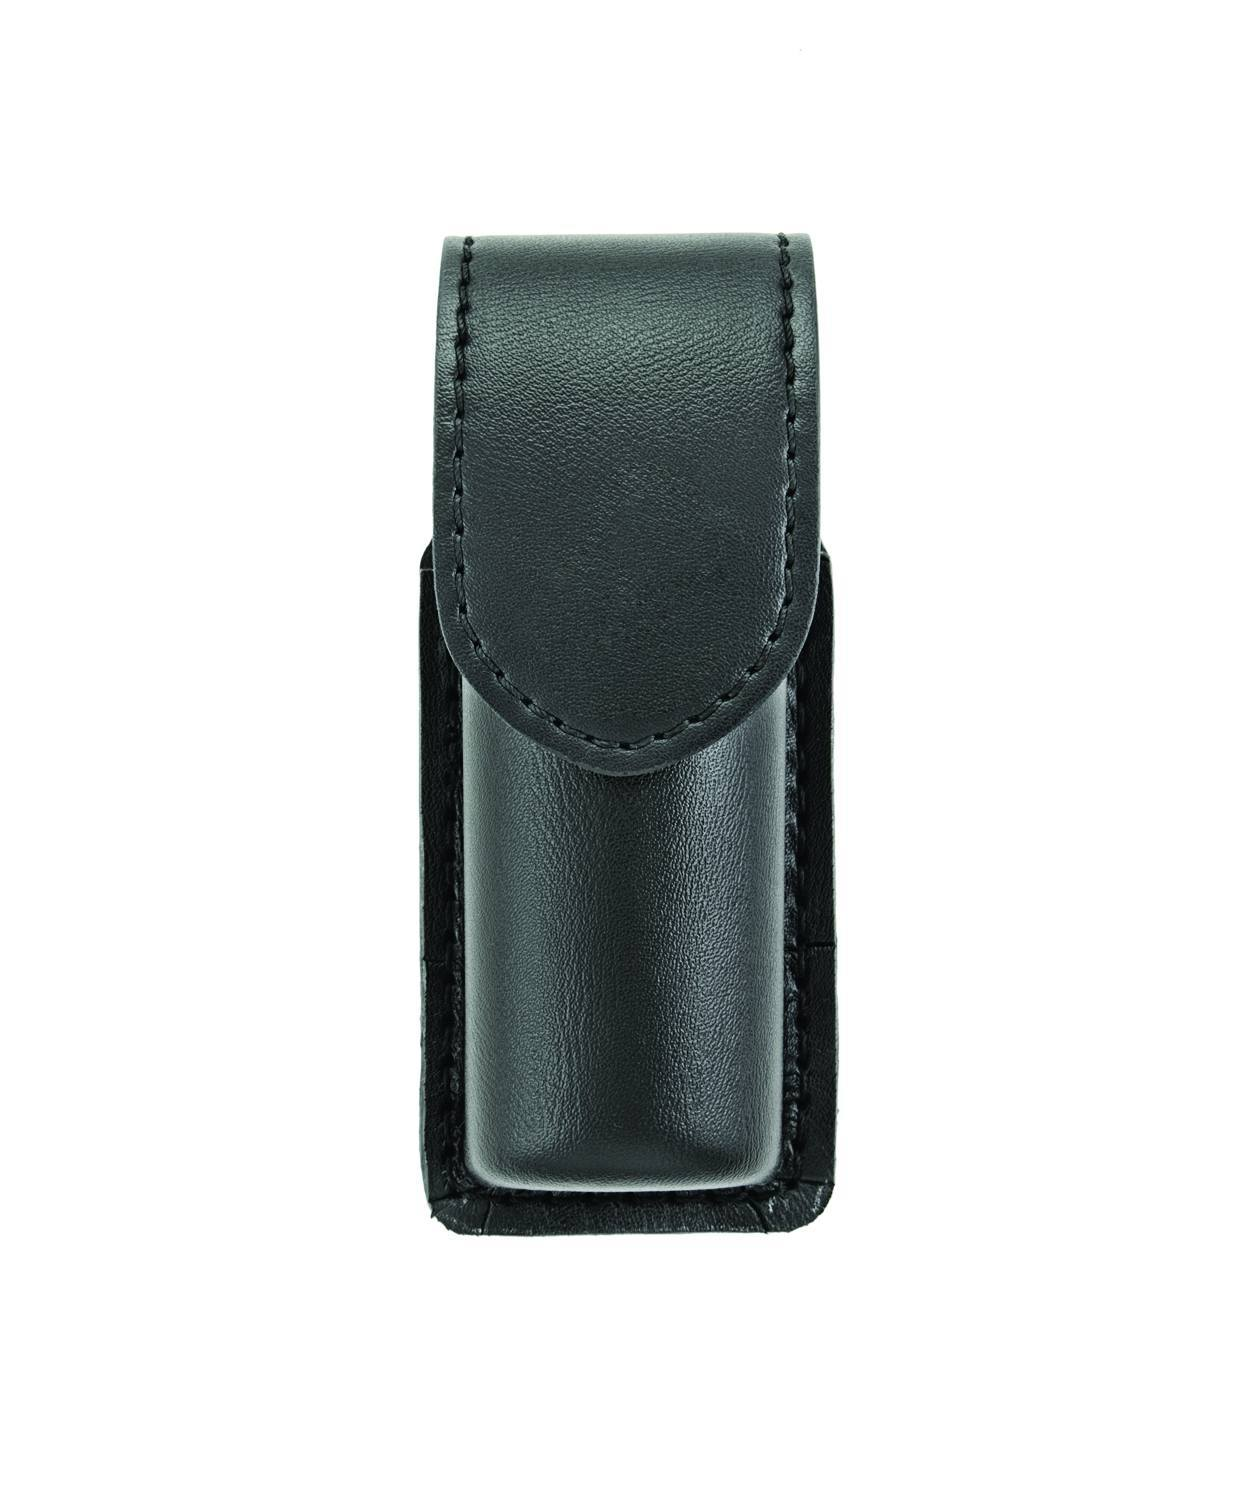 O.C. (Pepper) Spray Case, Small, MK3 (MK2,6), AirTek, Smooth, Hidden Snap